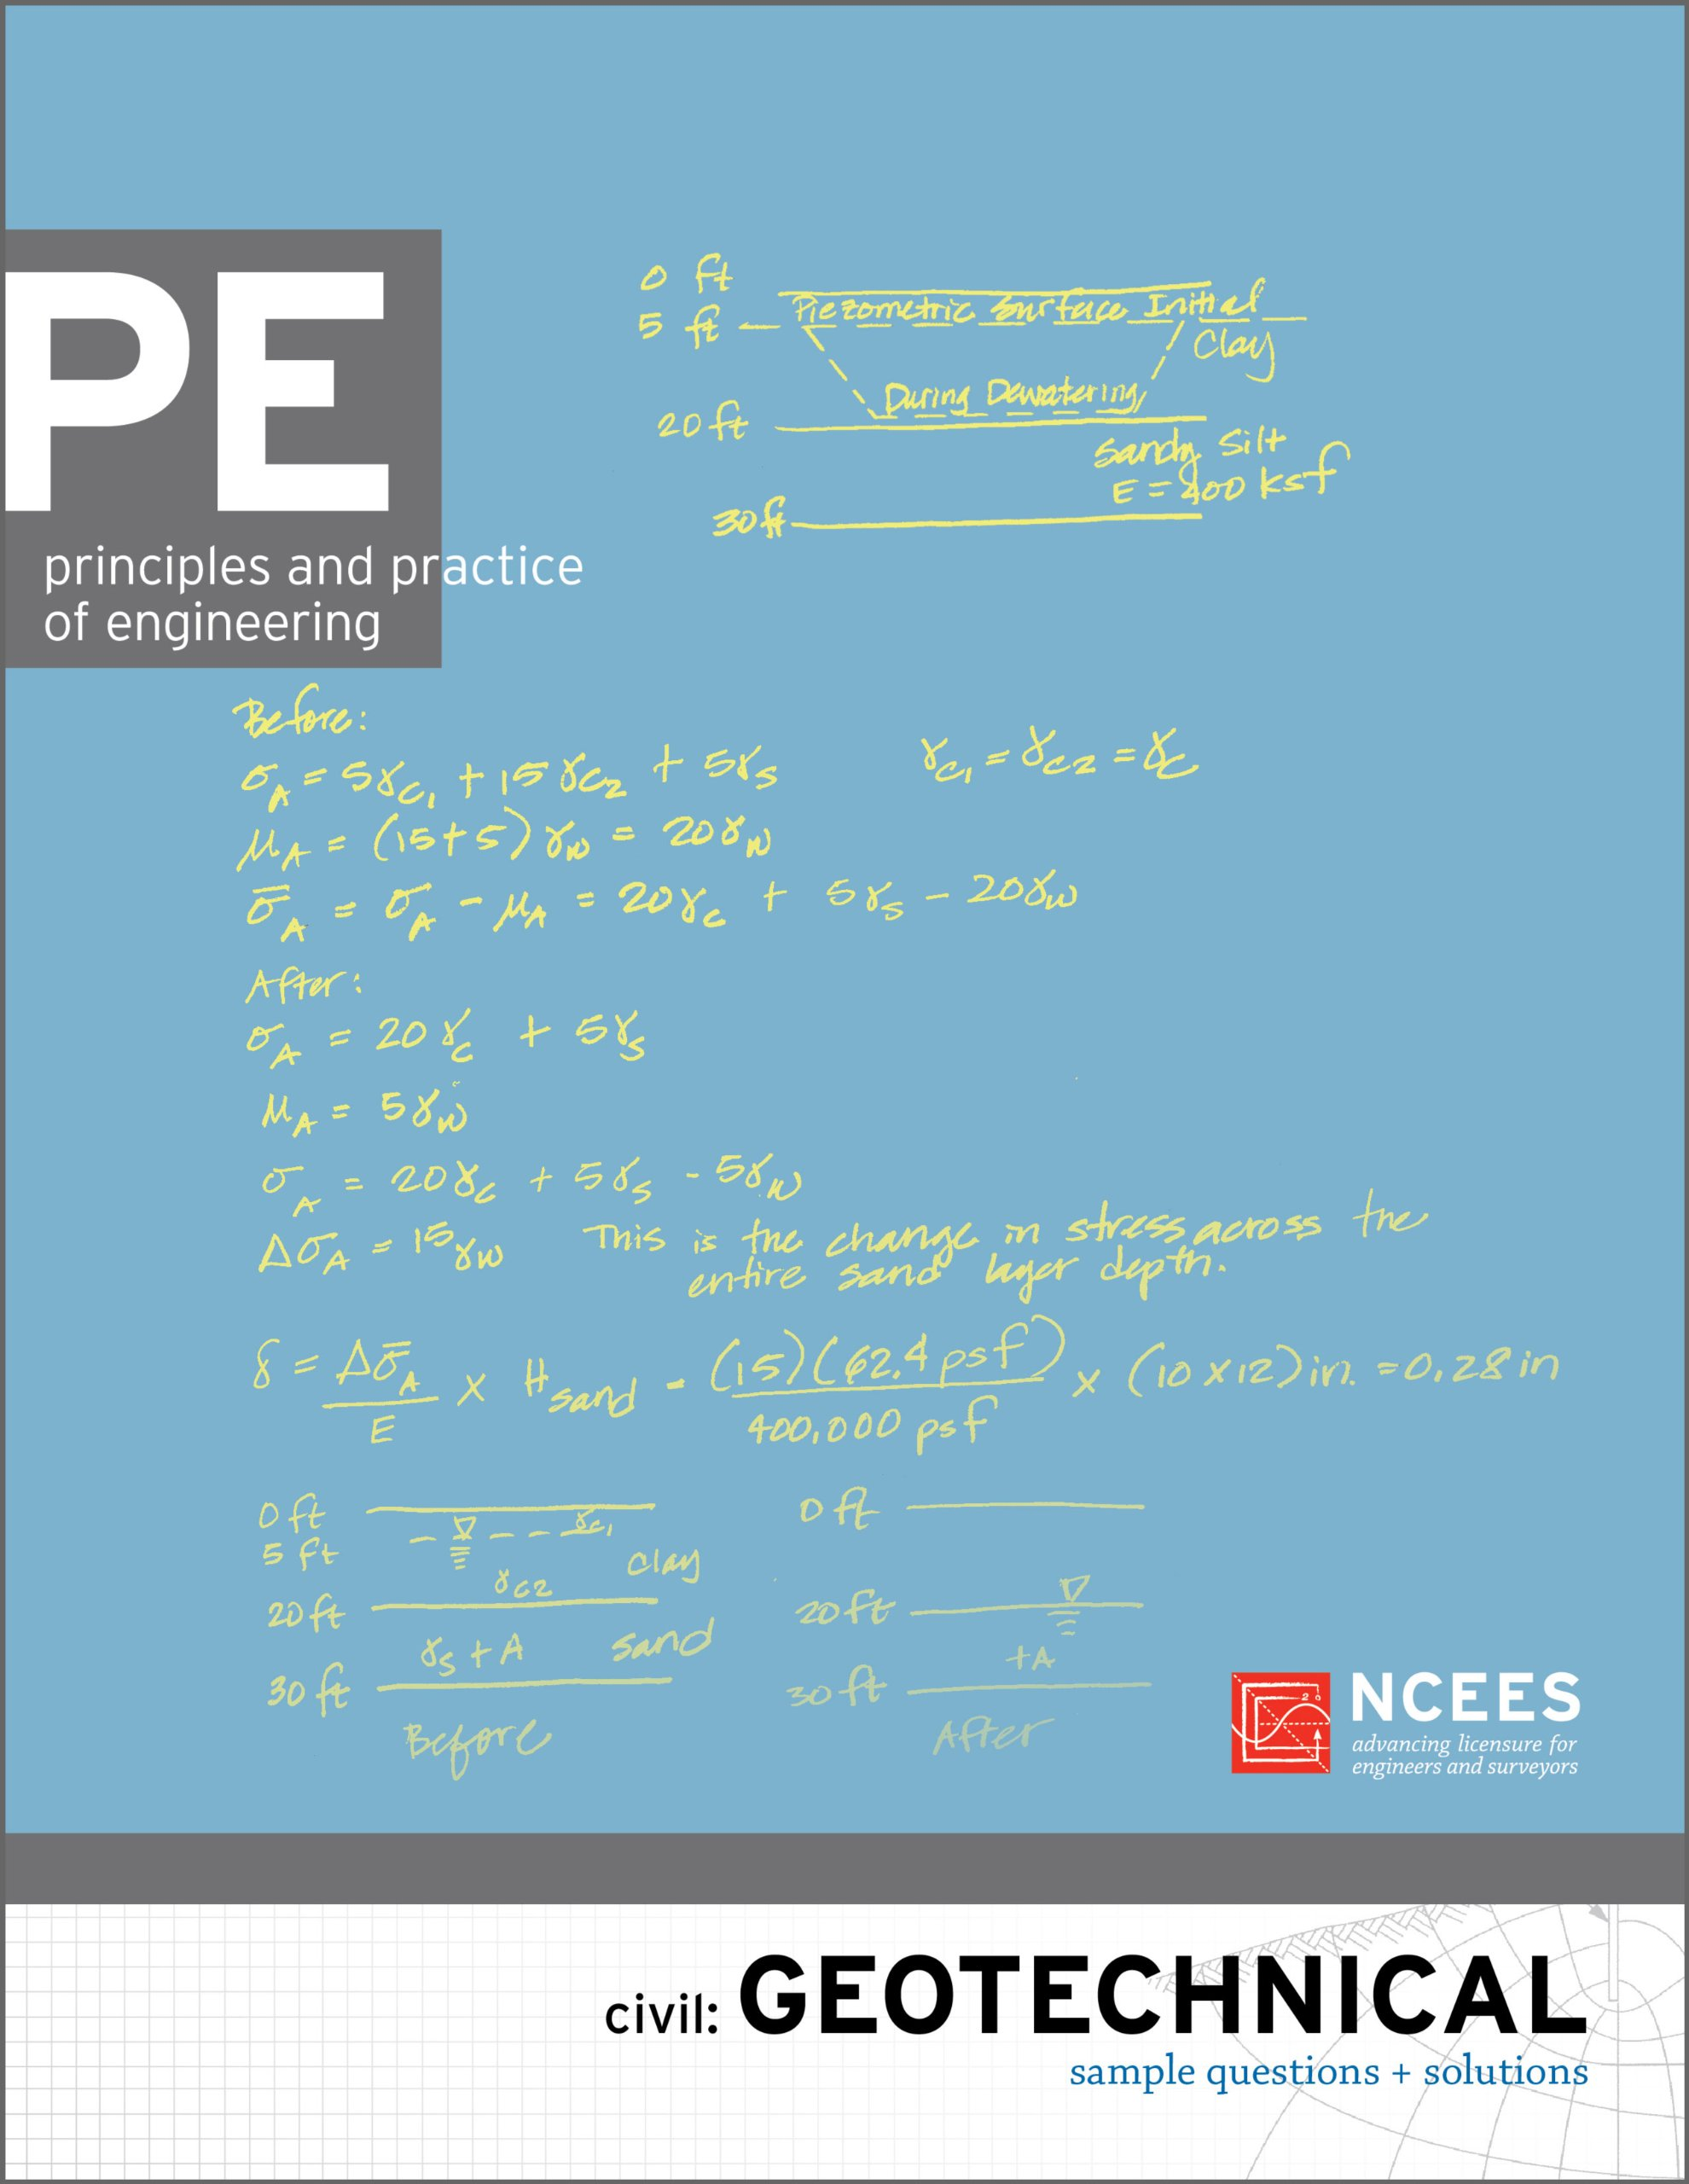 Pe civil geotechnical sample questions and solutions ncees pe civil geotechnical sample questions and solutions ncees 9781932613629 amazon books fandeluxe Gallery